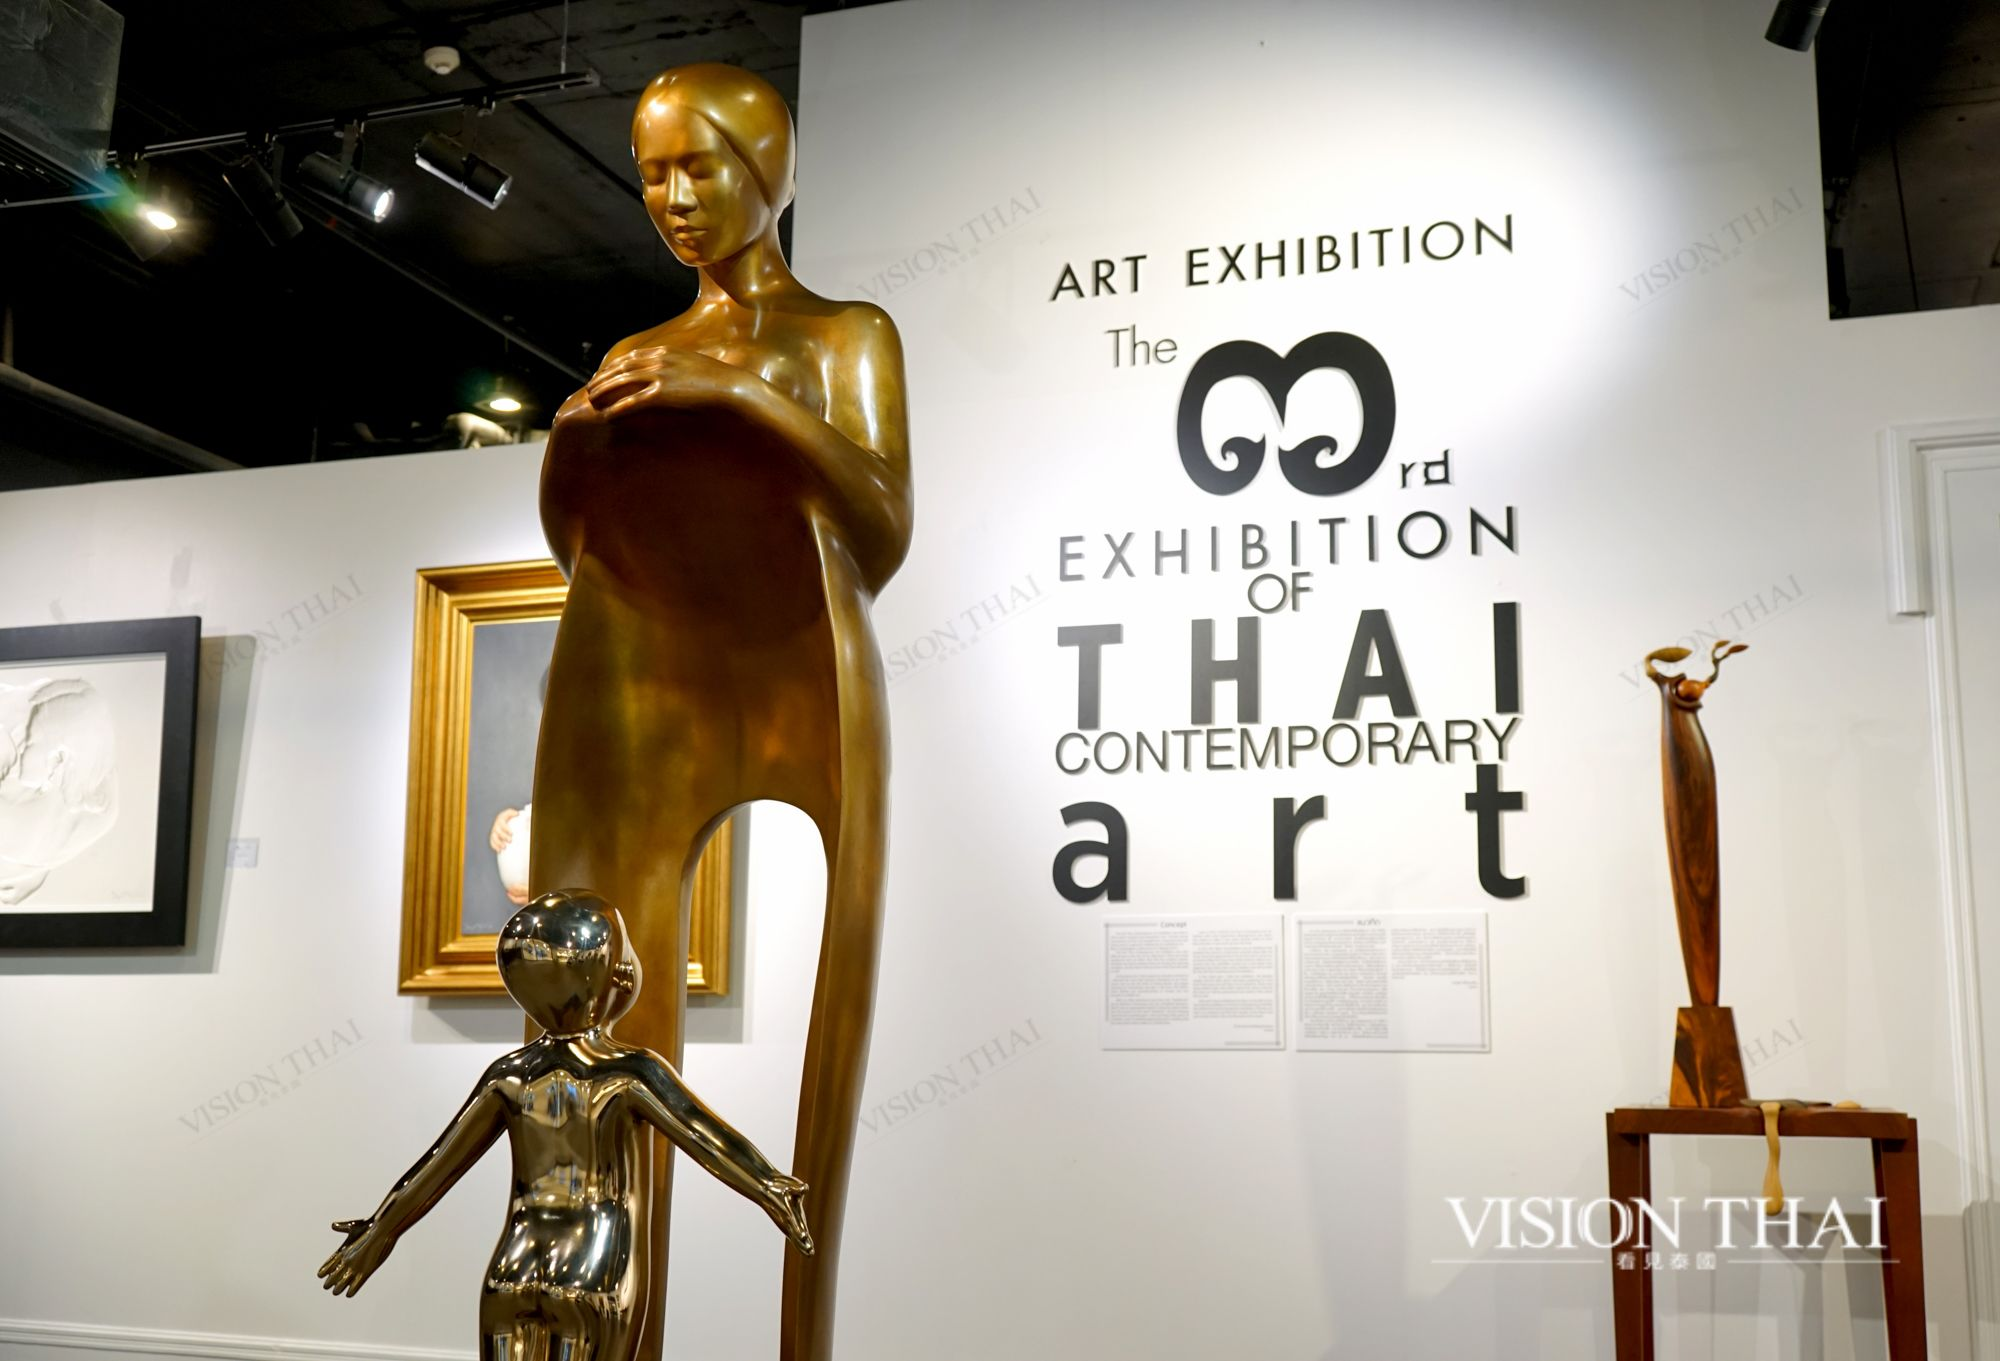 第3屆泰國當代藝術展 The 3rd Exhibition of Thai Contemporary Art